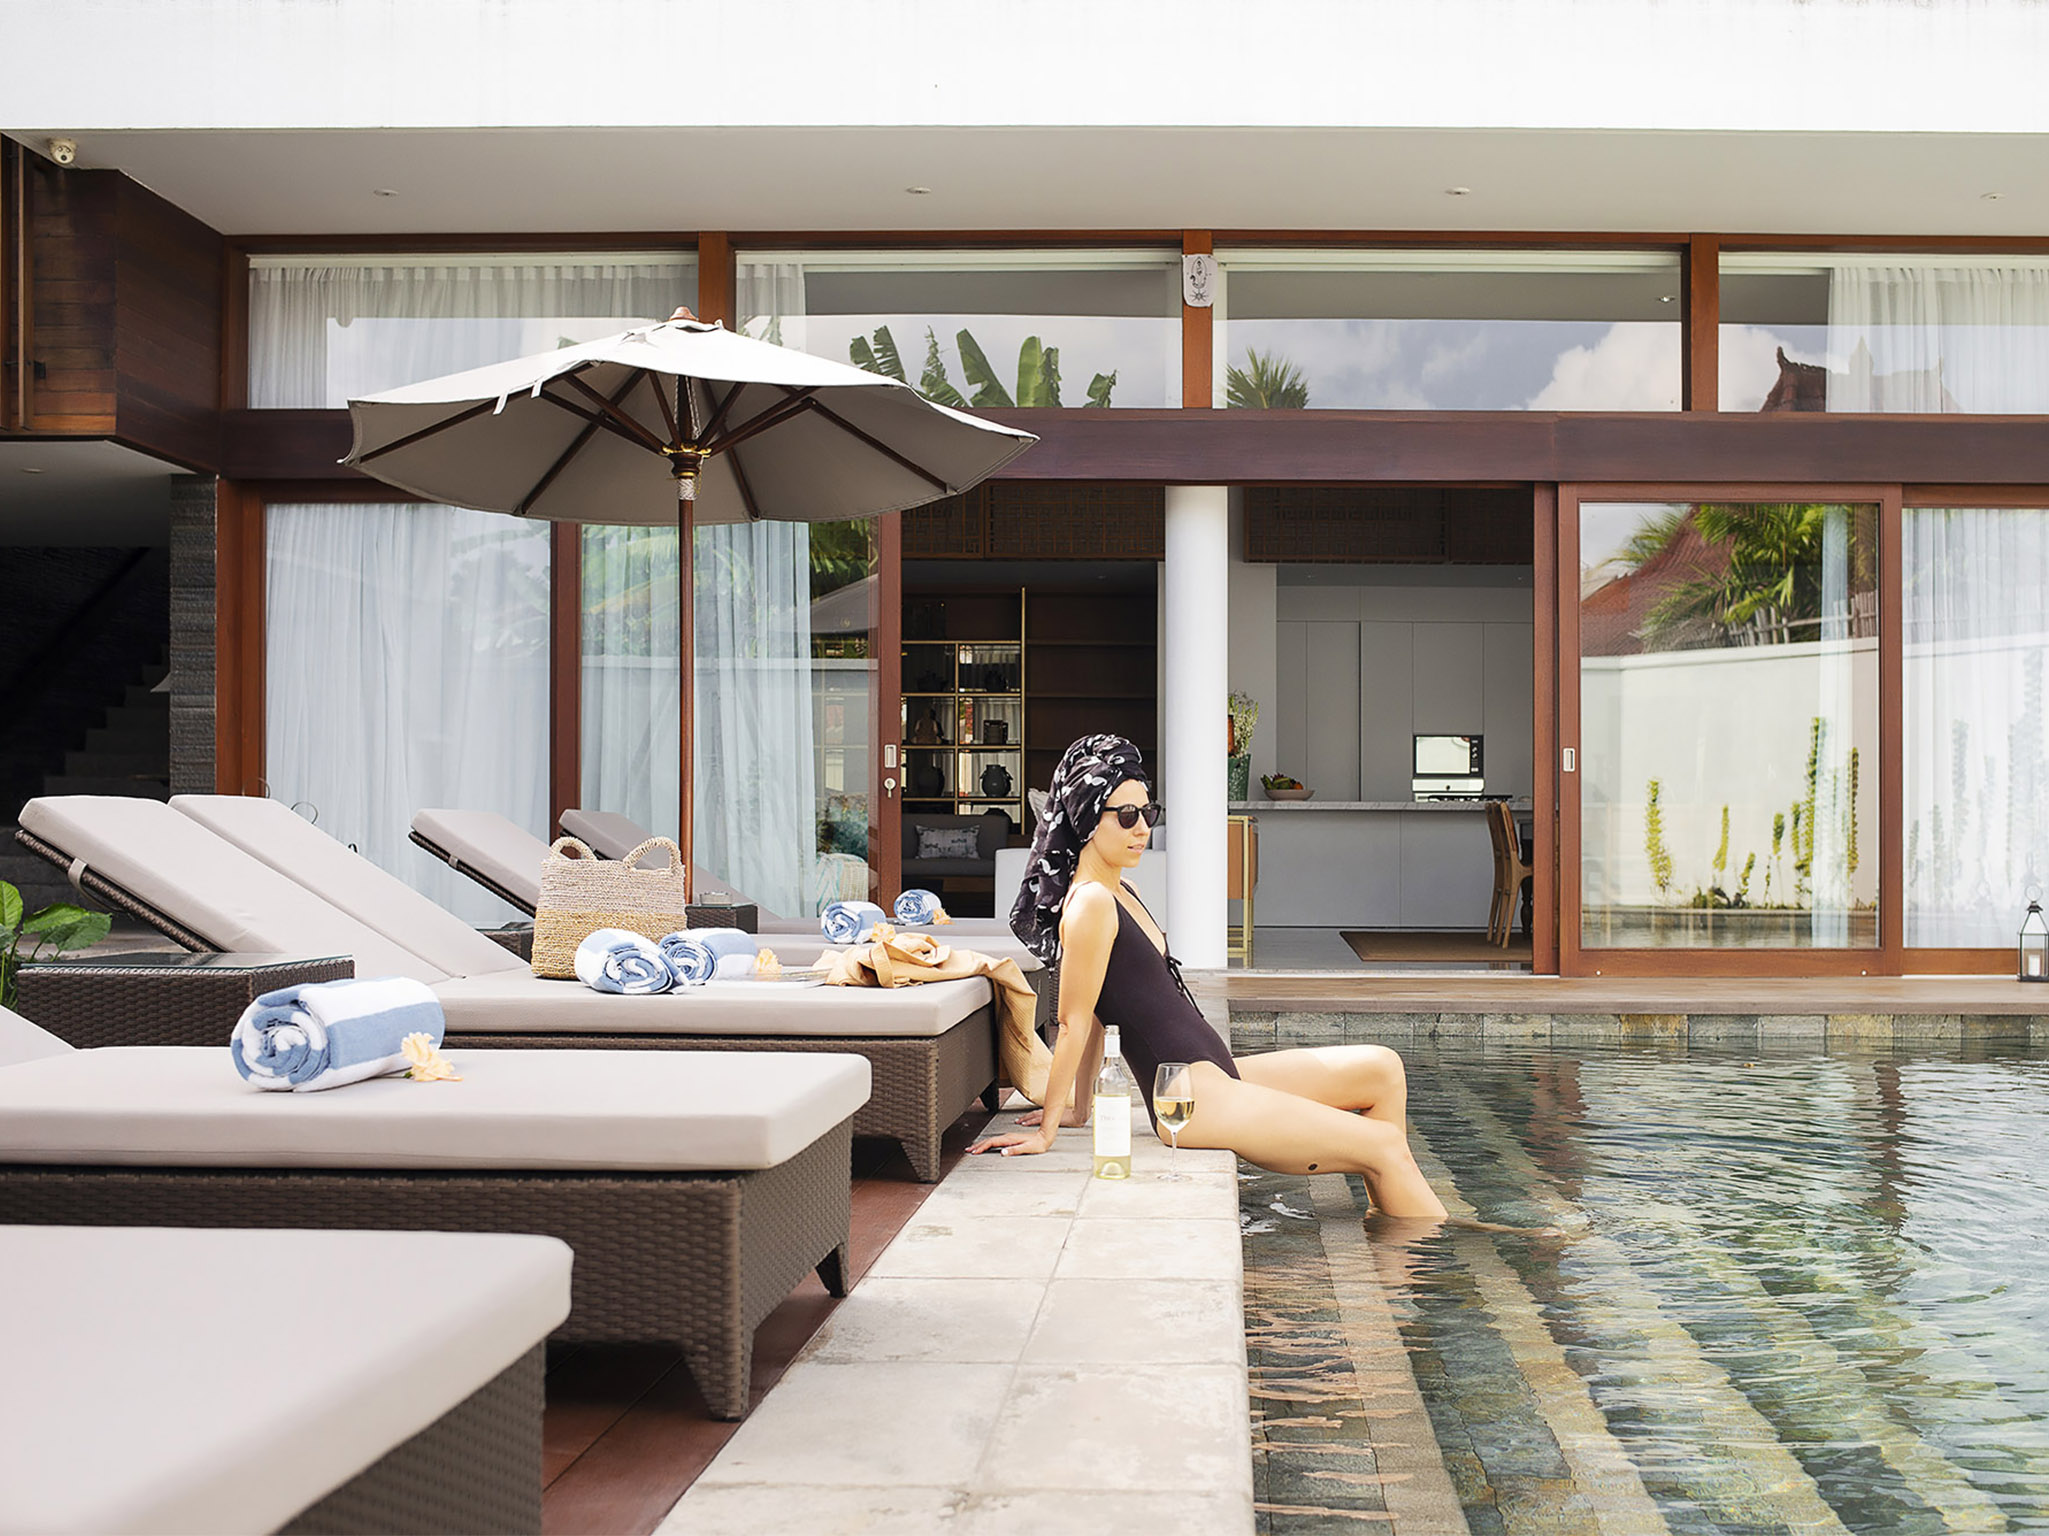 Villa Indrani - Sunloungers and the pool - Villa Indrani, Canggu, Bali